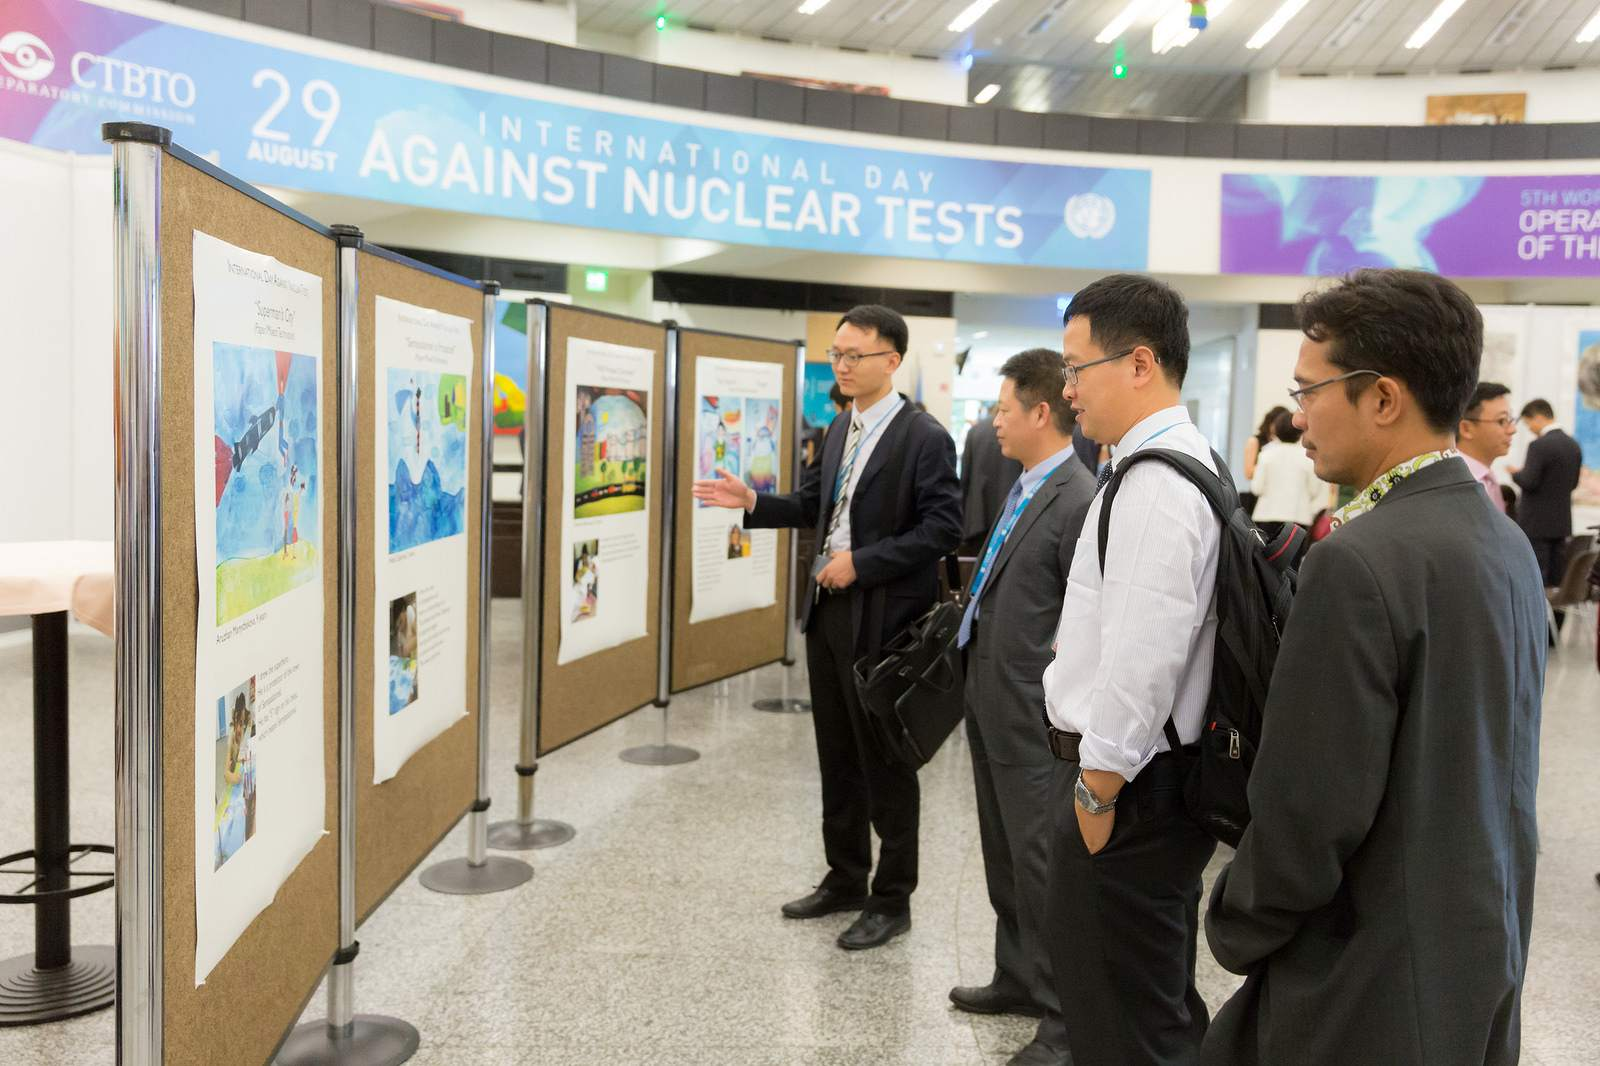 nuclear test6 International Day Against Nuclear Tests 2015